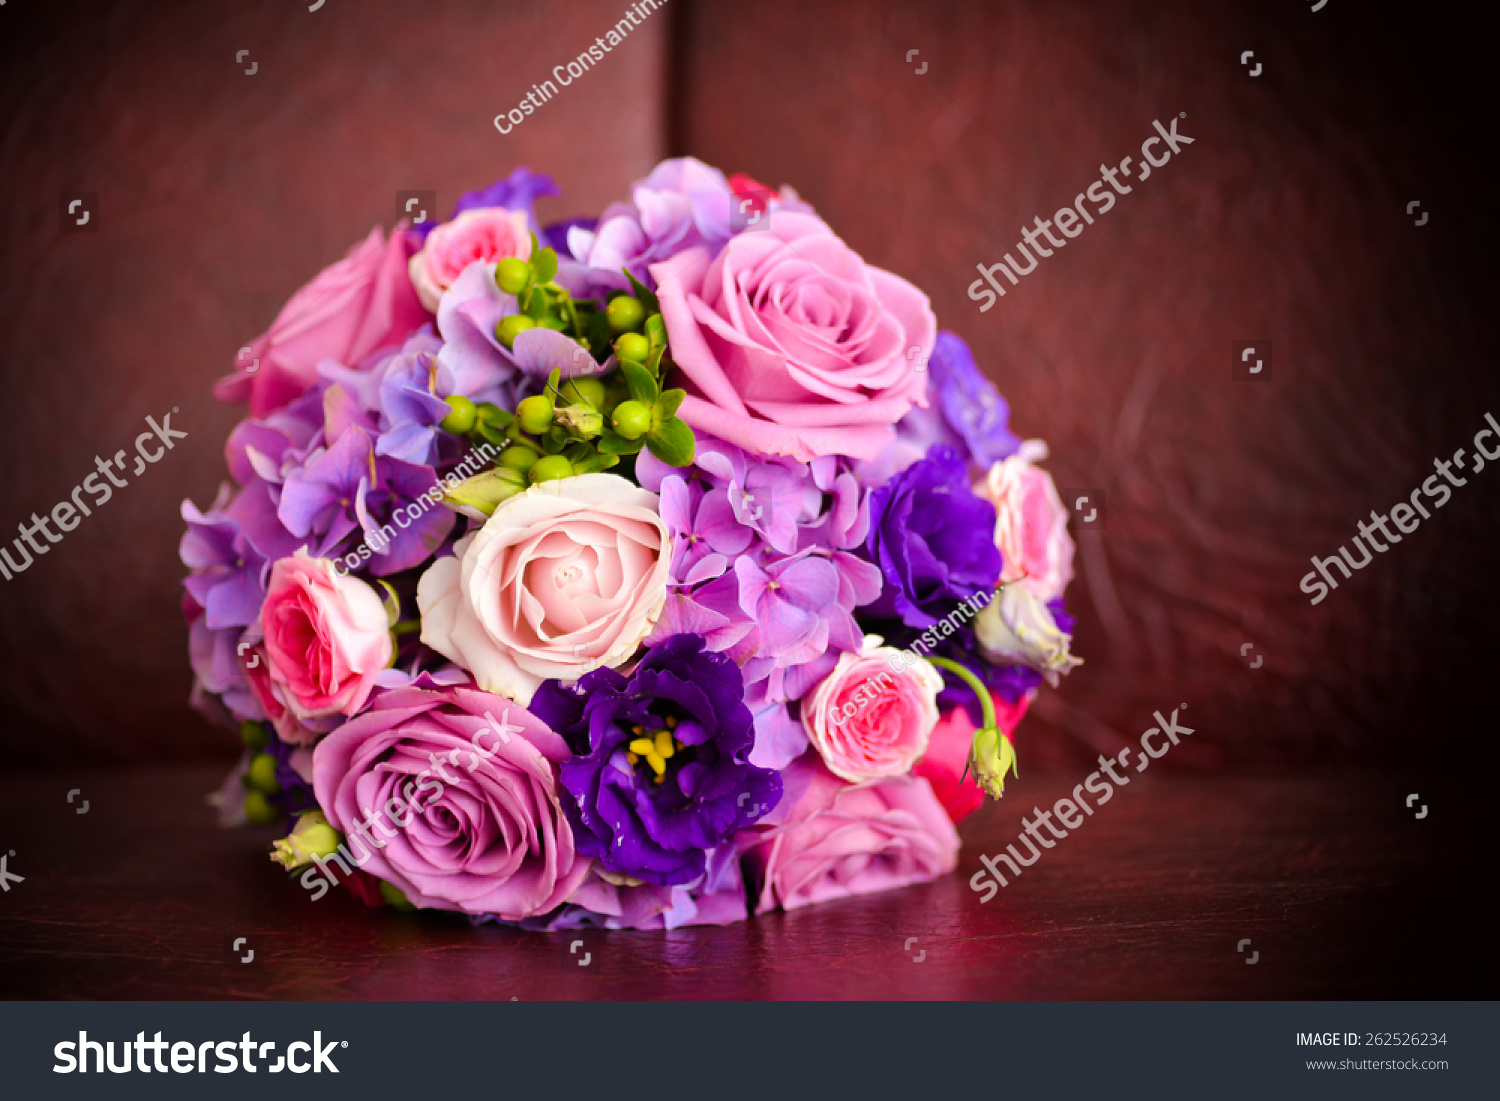 Wedding bouquet with pink roses | EZ Canvas